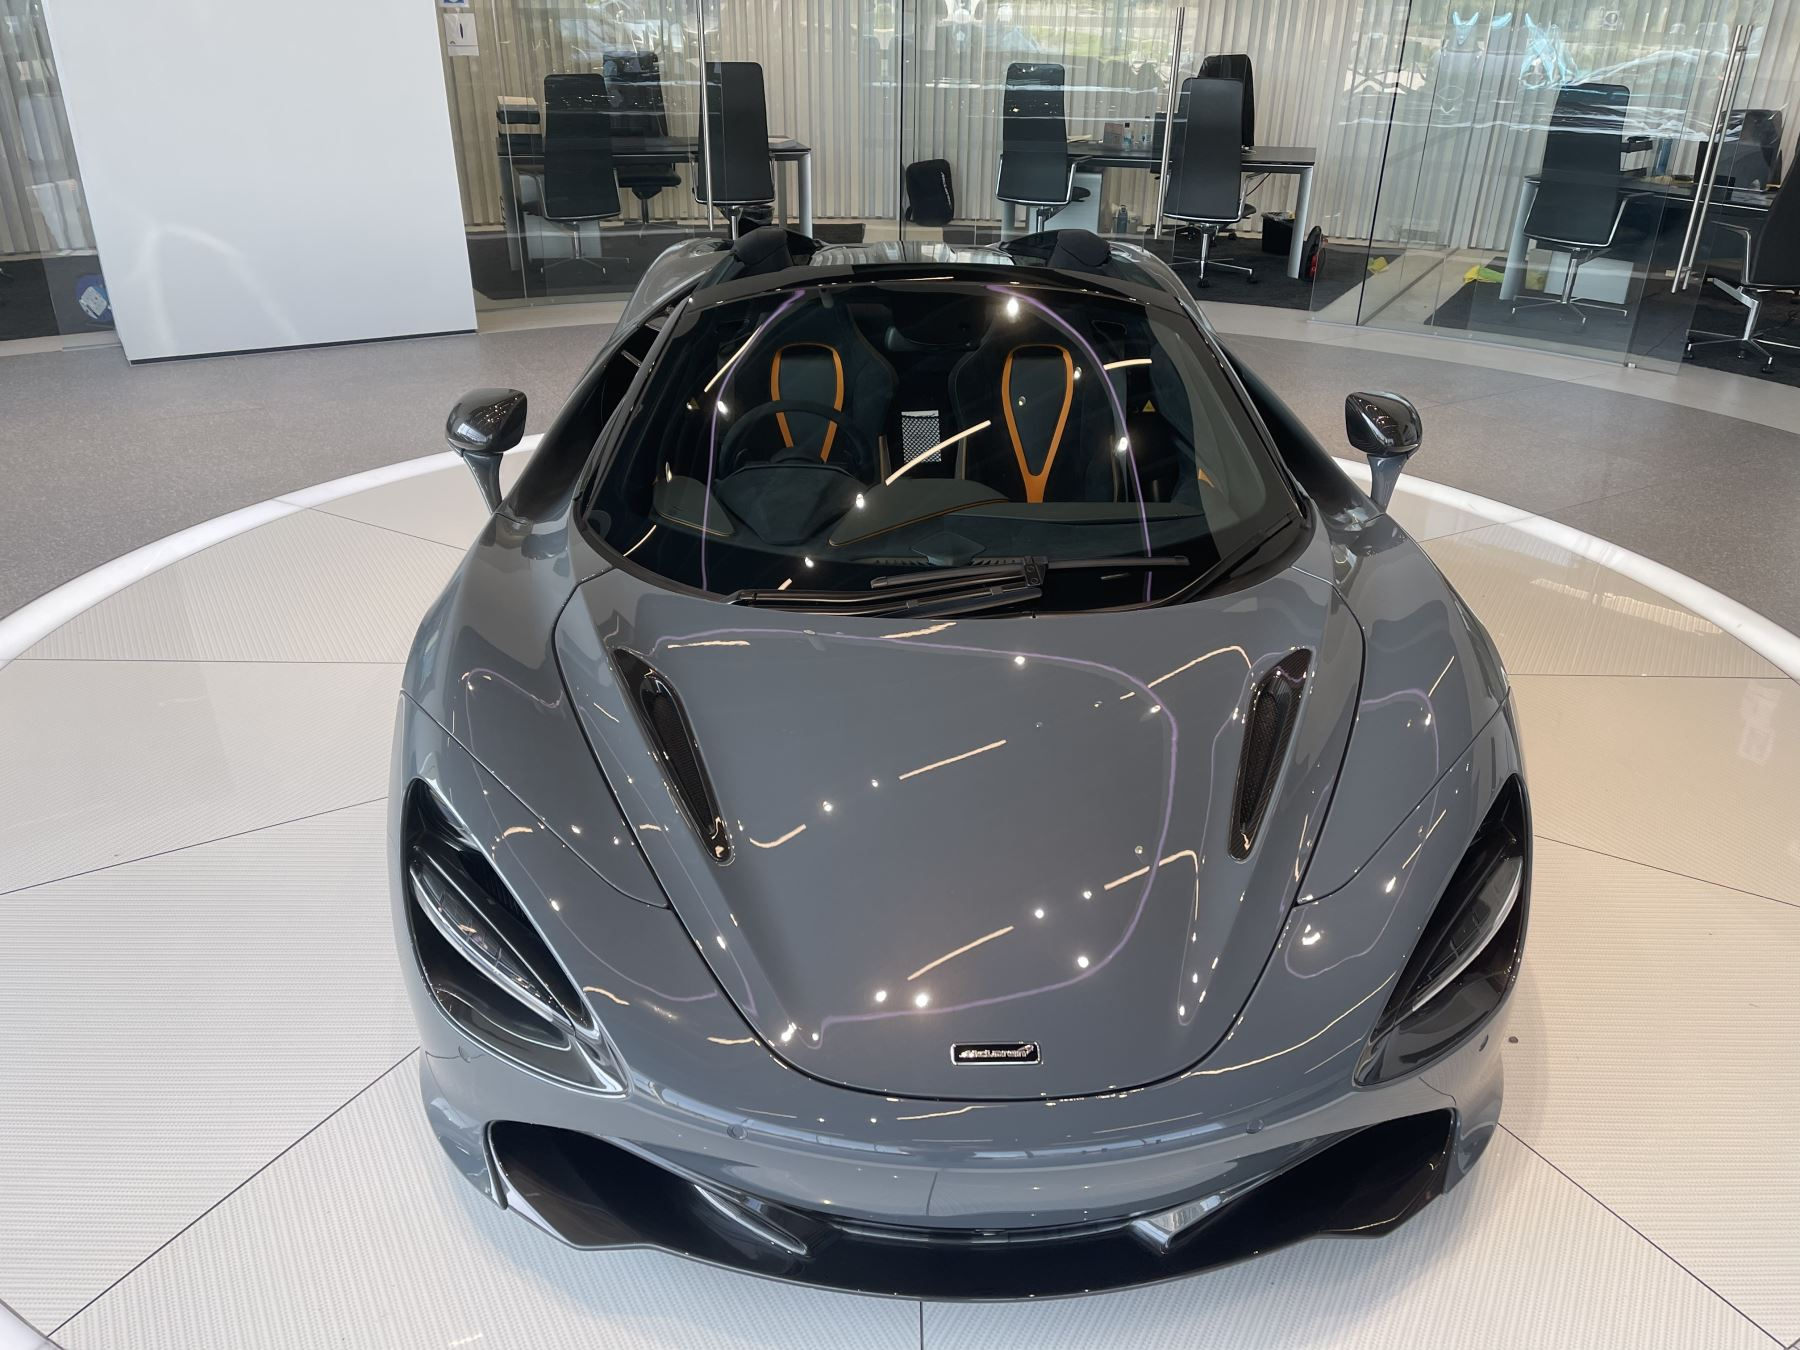 McLaren 720S Spider V8 2 DR PERFORMANCE VERY RARE COLOUR AND FULL CAR PPF image 3